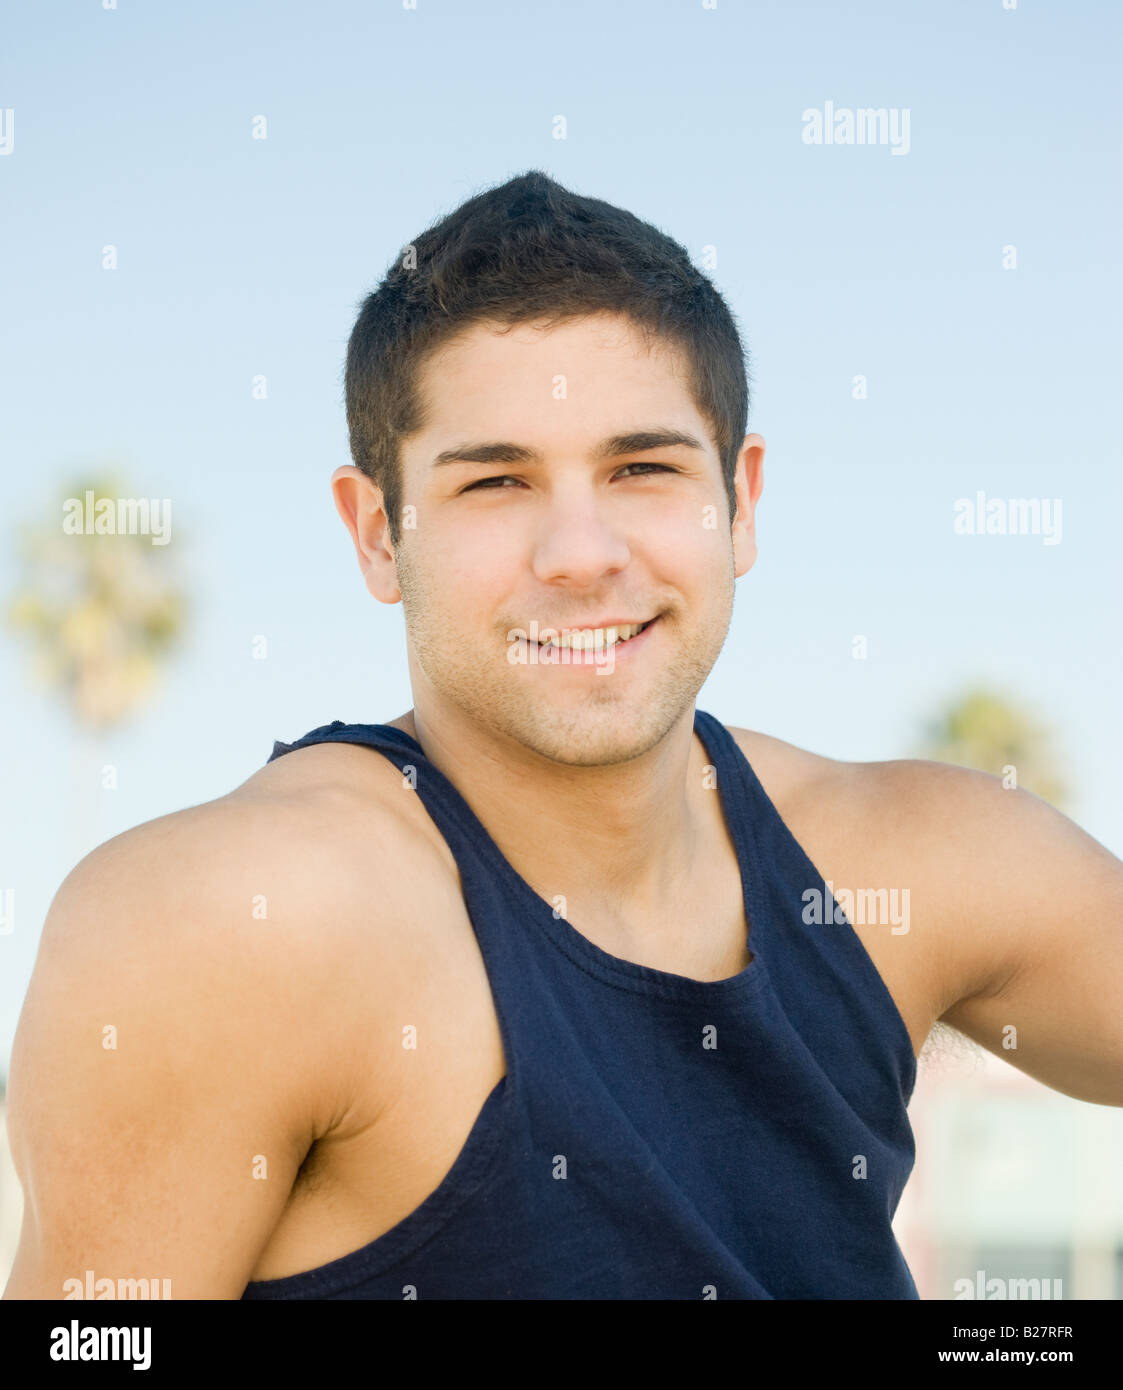 525124b217dc7 Close up of man wearing tank top Stock Photo  18611819 - Alamy